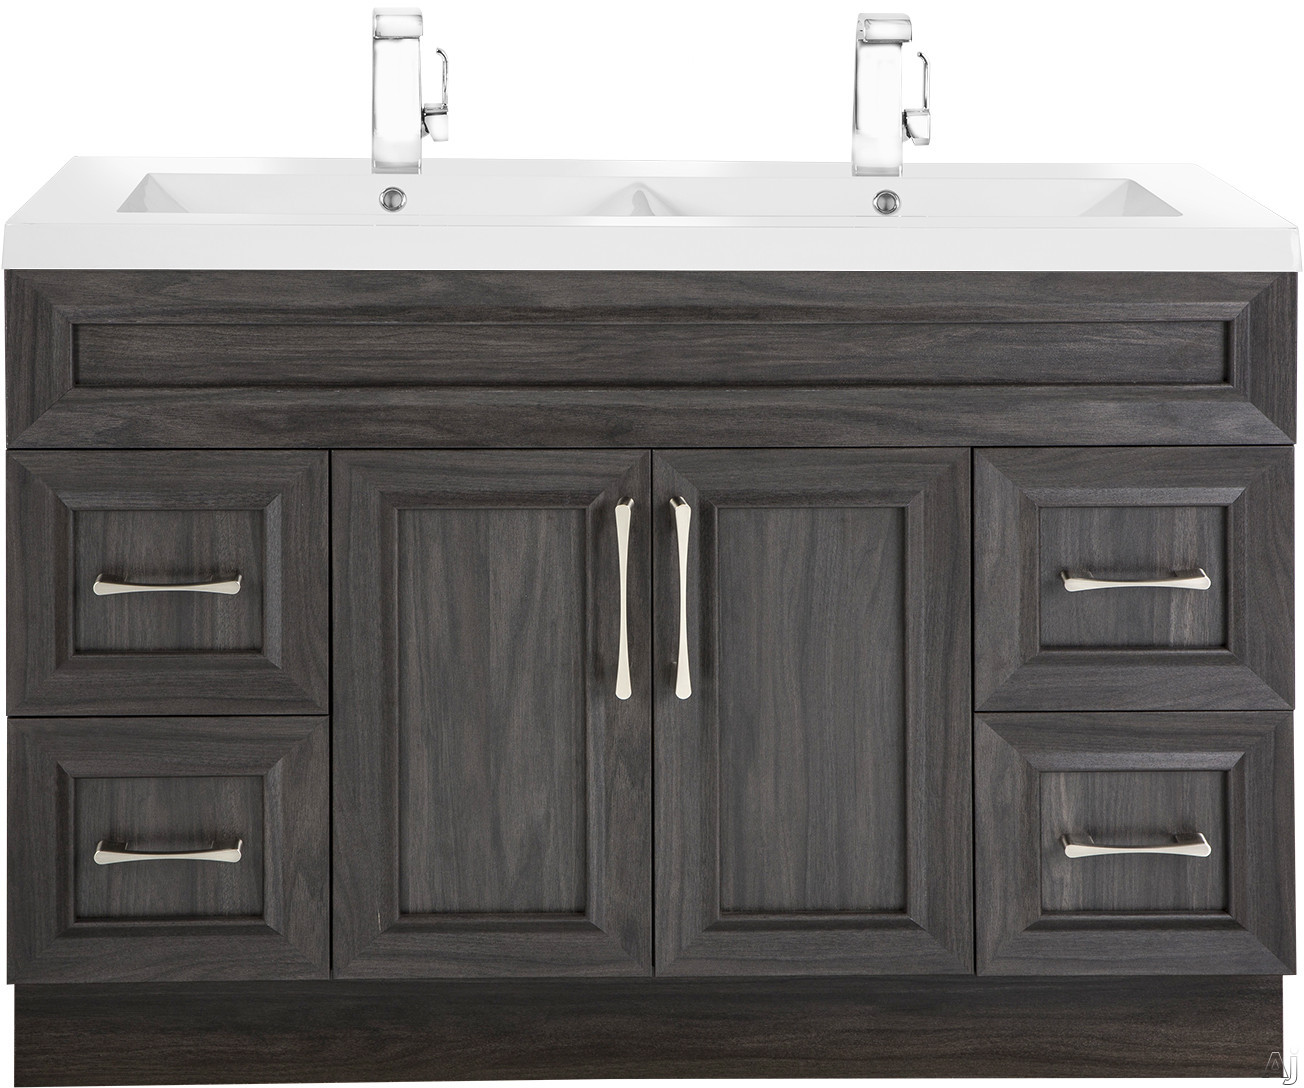 Cutler Kitchen & Bath Classic CCKATR48DBT 48 Inch Freestanding Double Bowl Vanity with 4 Soft Close Drawers, Countertop and Sink and Handles Included